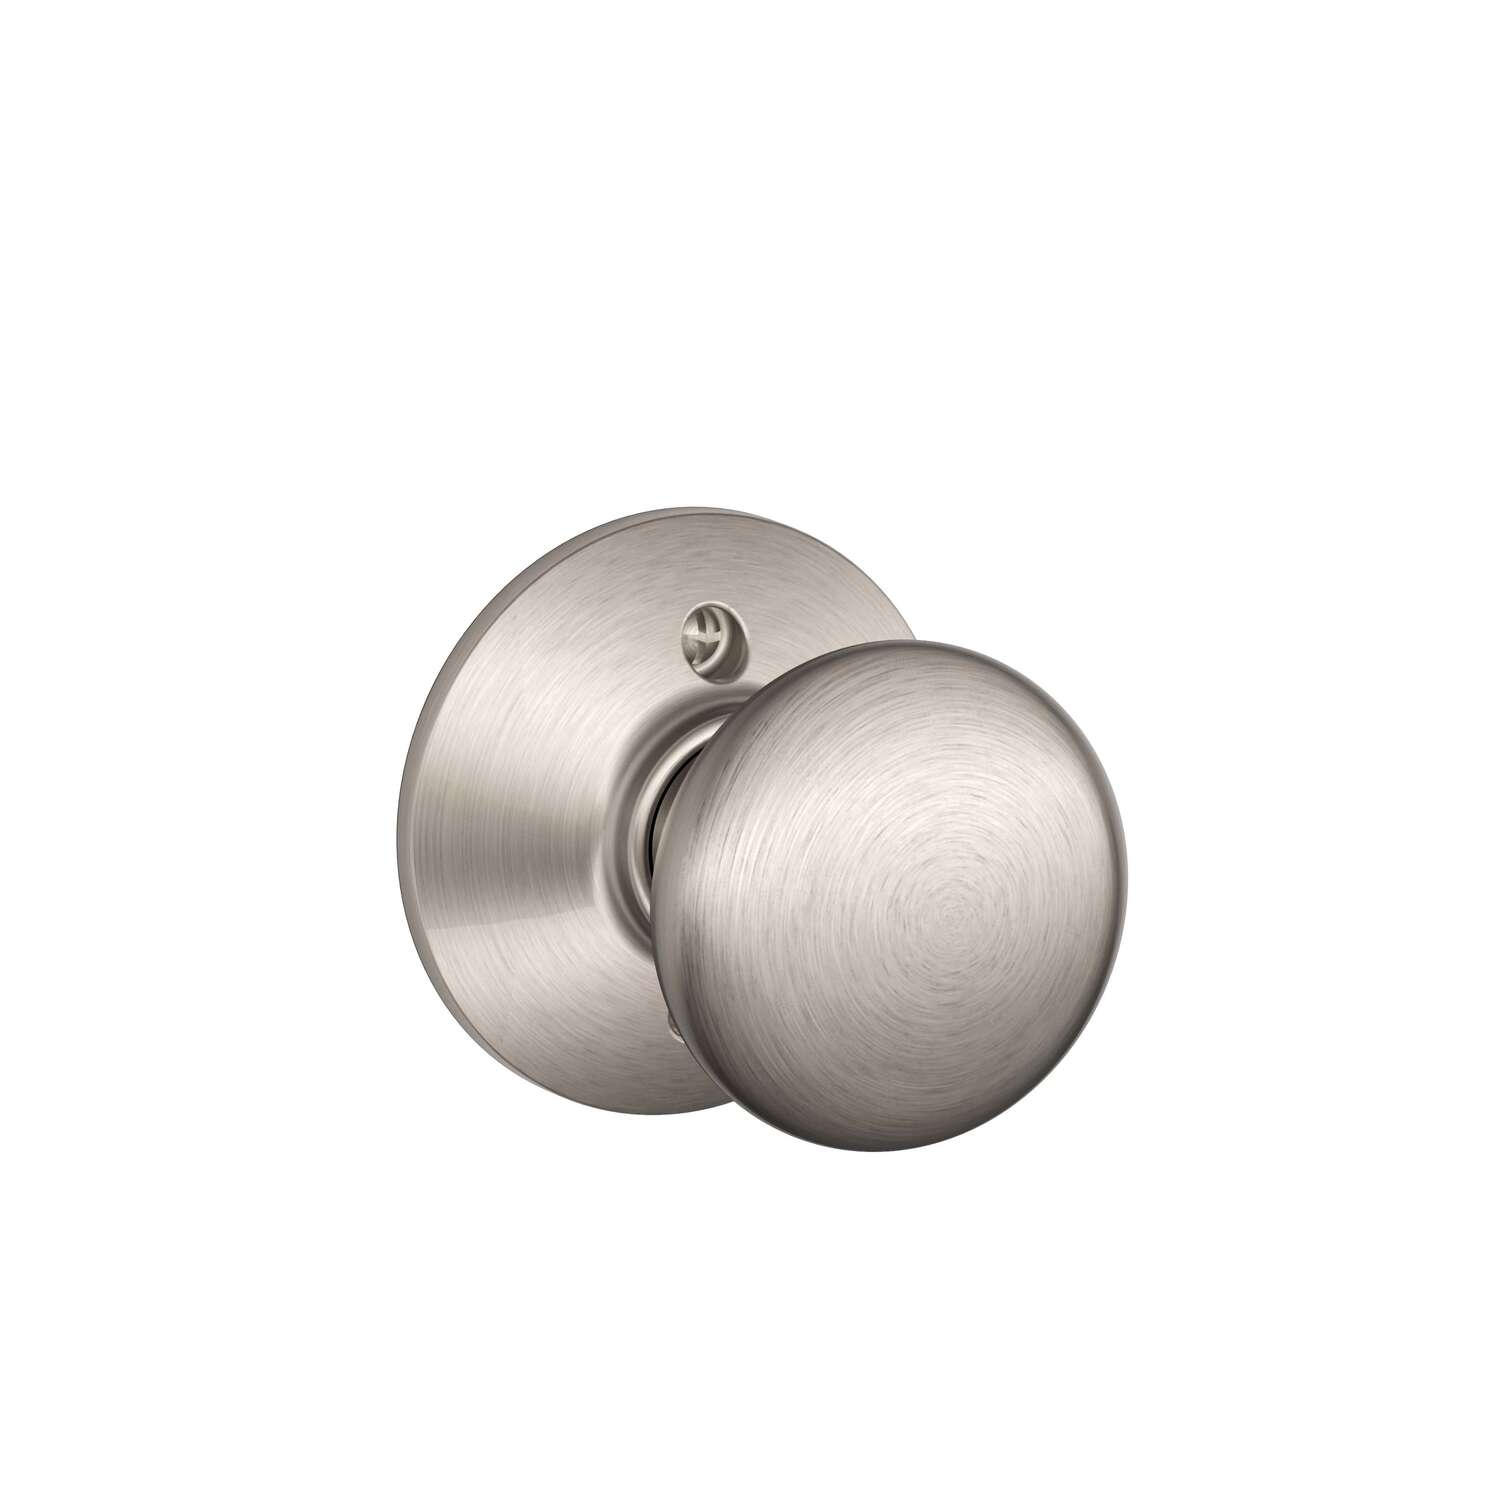 Schlage  Modern/Contemporary  Satin Nickel  Brass  Dummy Knob  2  Right or Left Handed